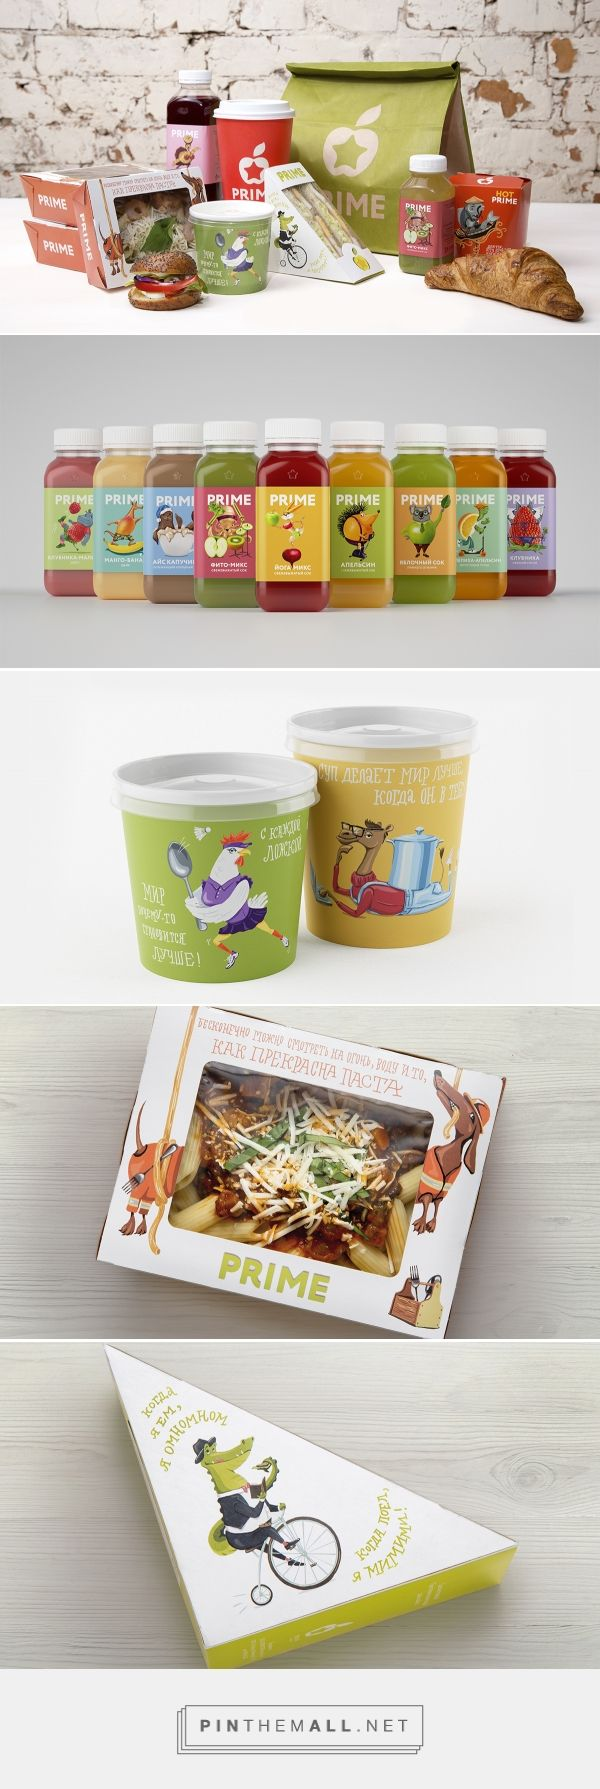 PRIME Redesigned - Packaging of the World - Creative Package Design Gallery - http://www.packagingoftheworld.com/2017/08/prime-redesigned.html